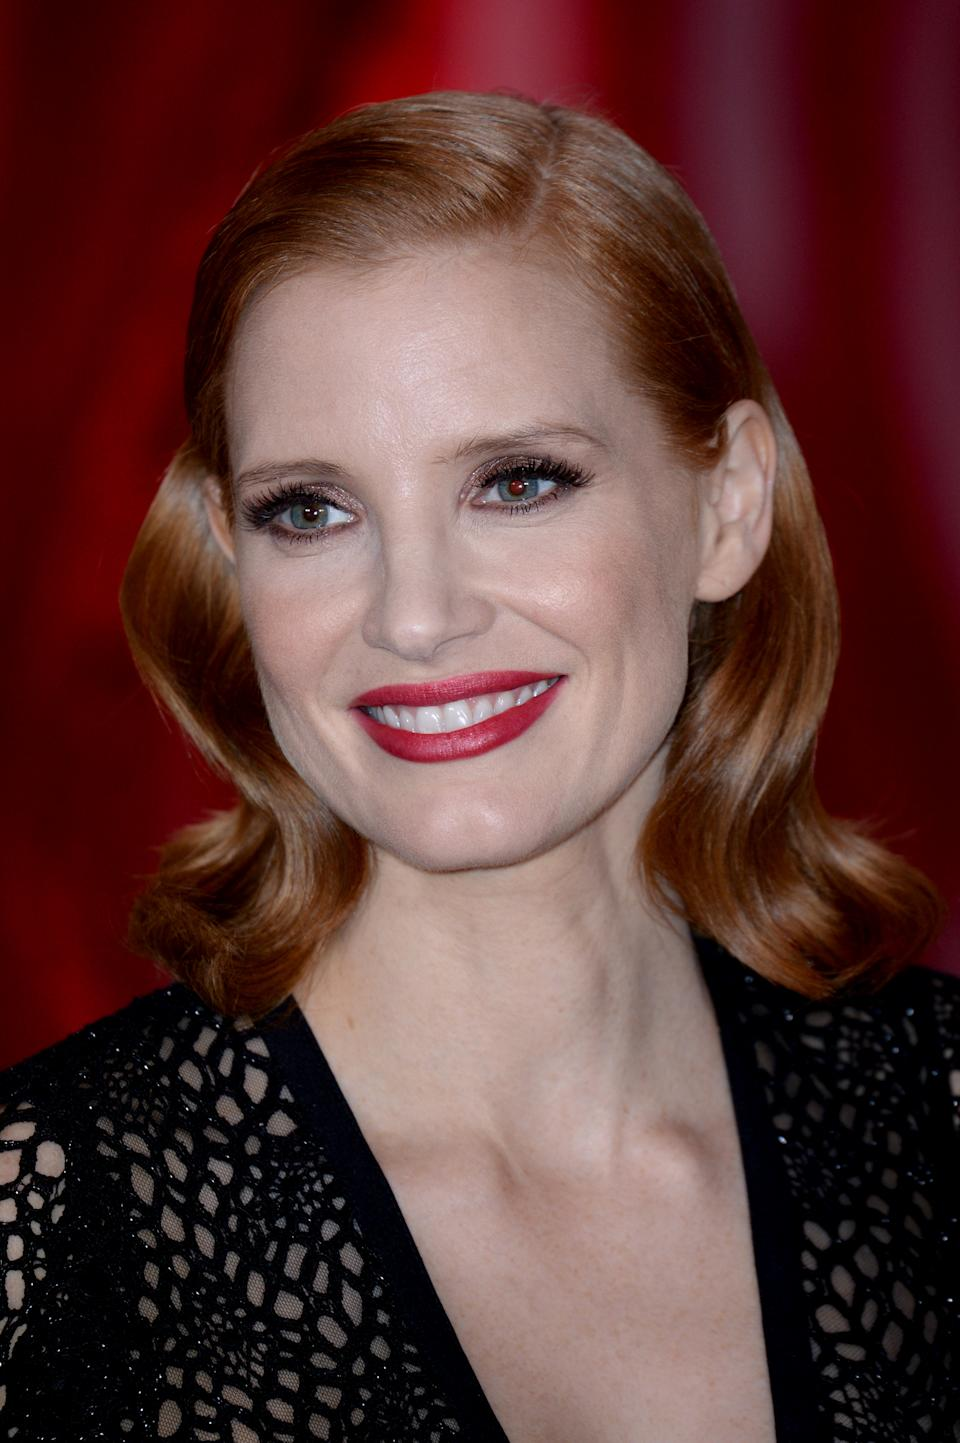 Jessica Chastain. (Photo by Eamonn M. McCormack/Getty Images)